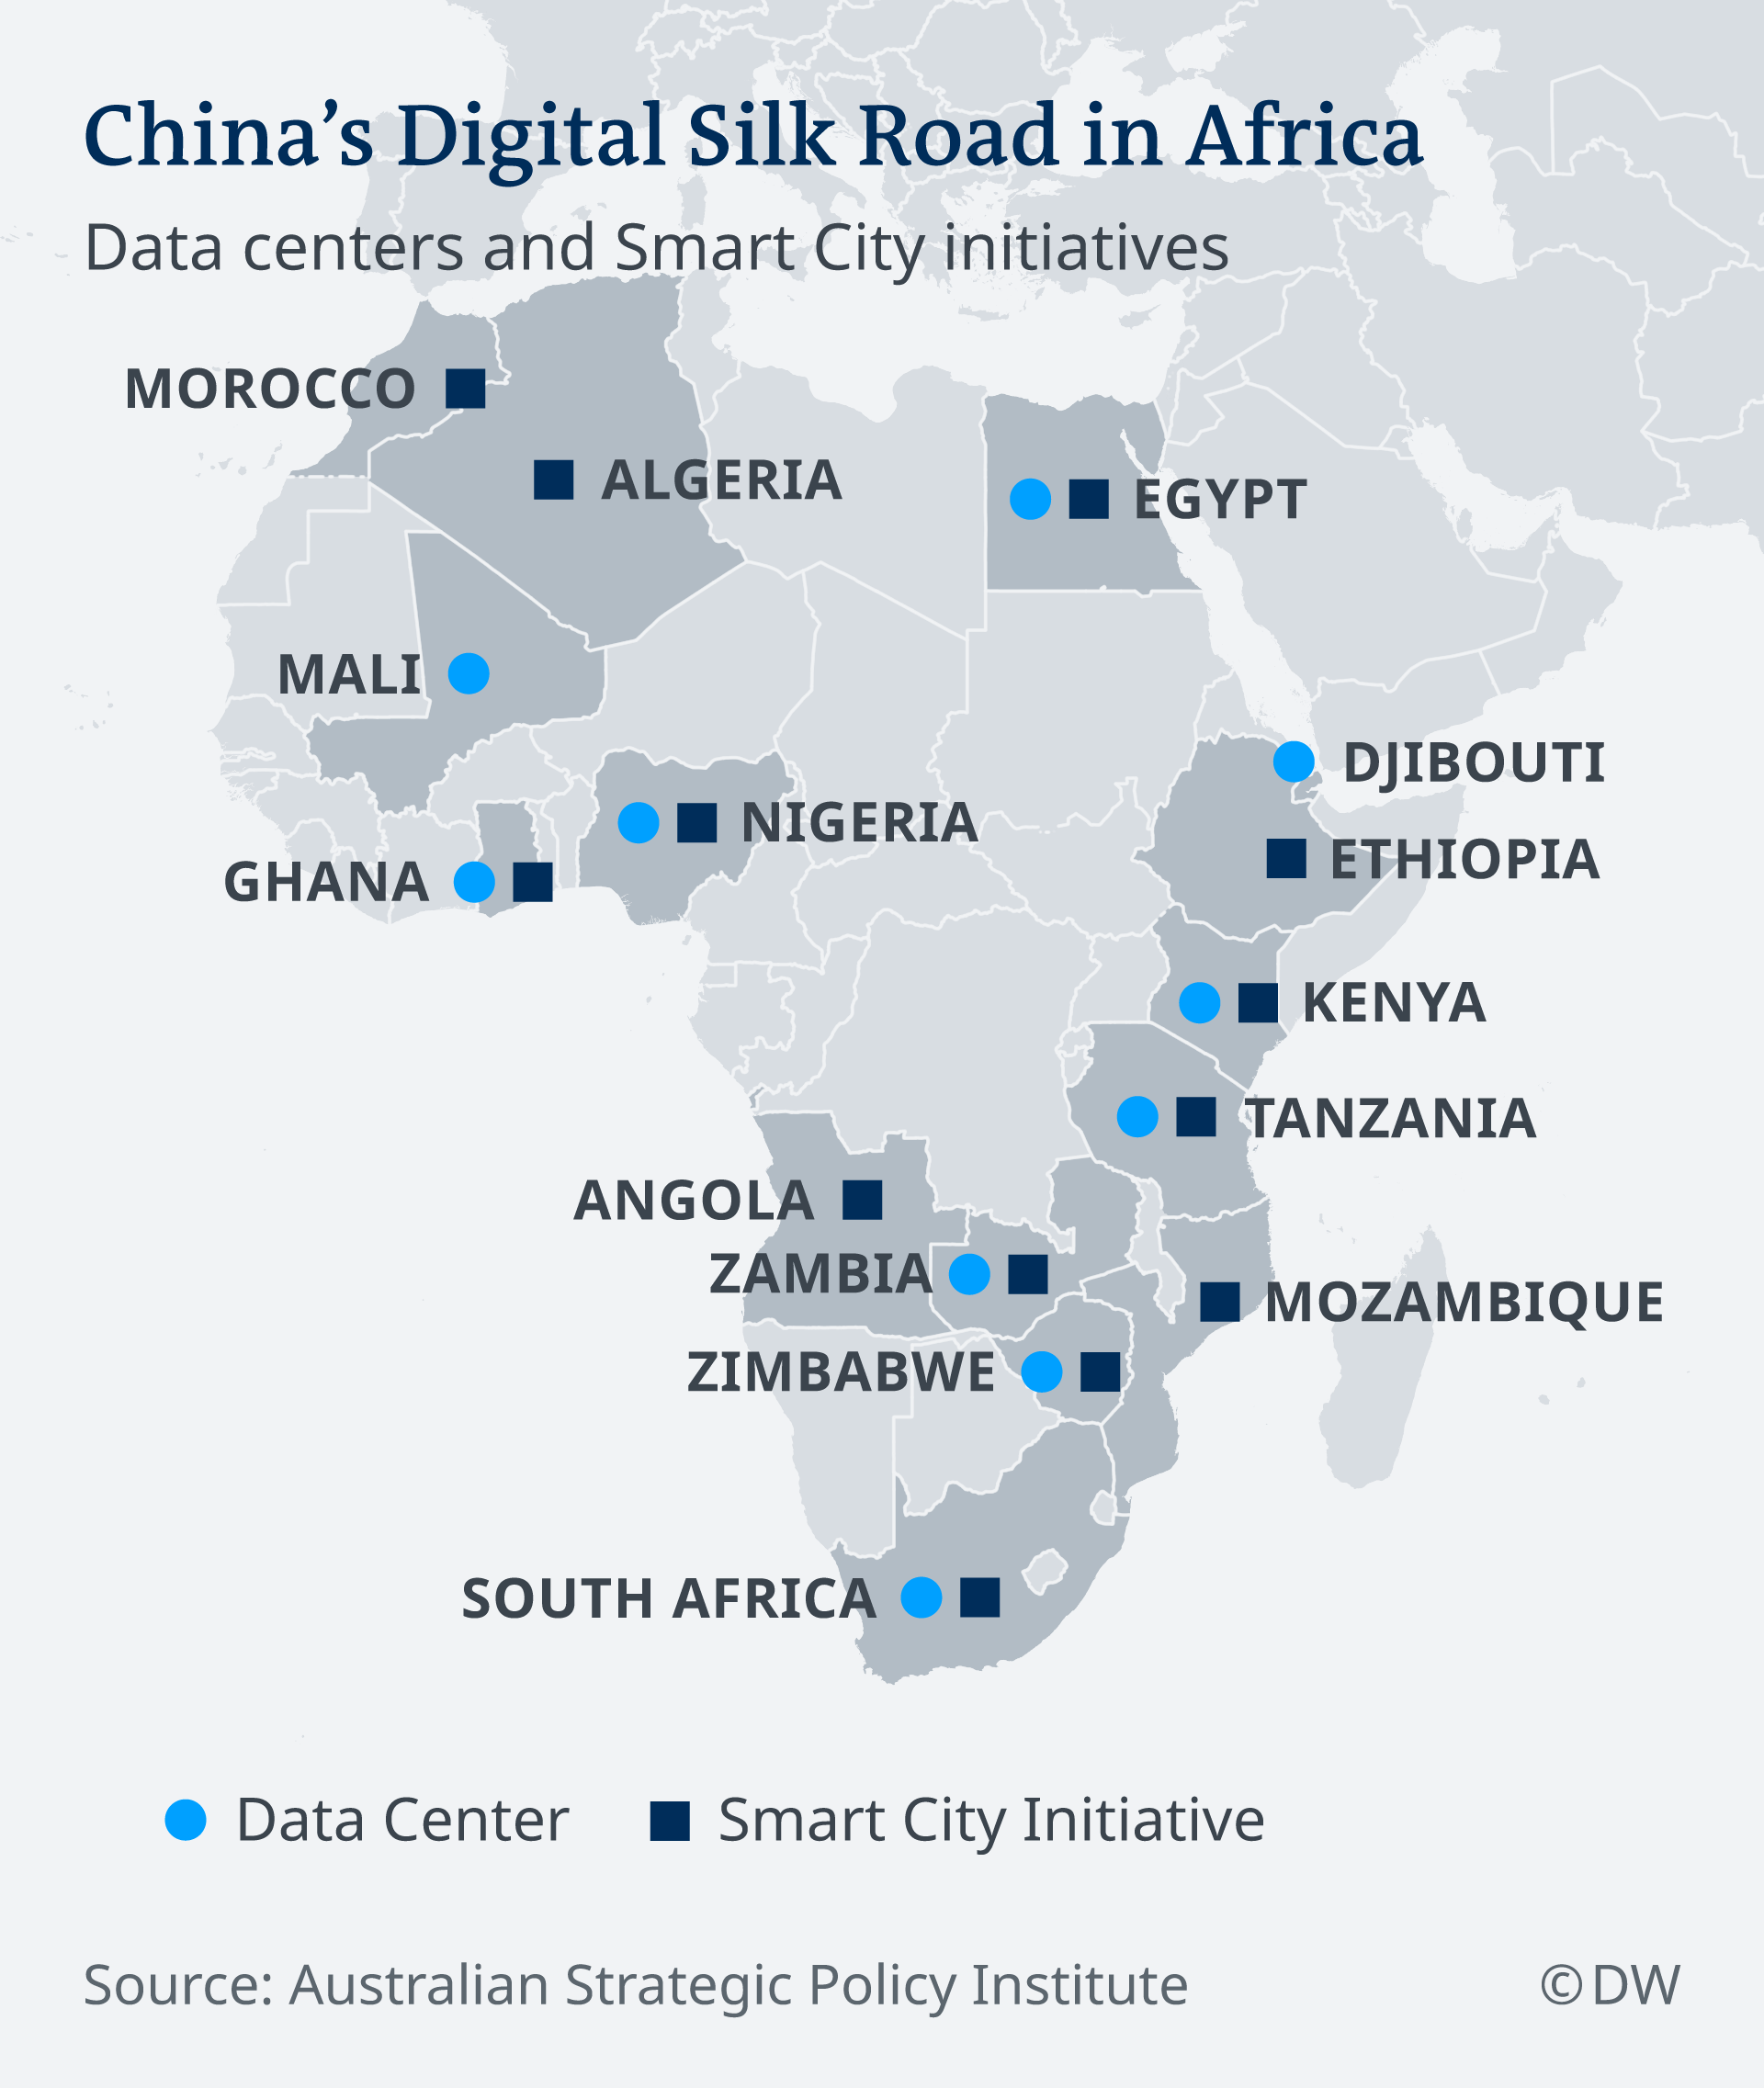 The locations of data centers and smart city initiatives supported by Chinese companies.